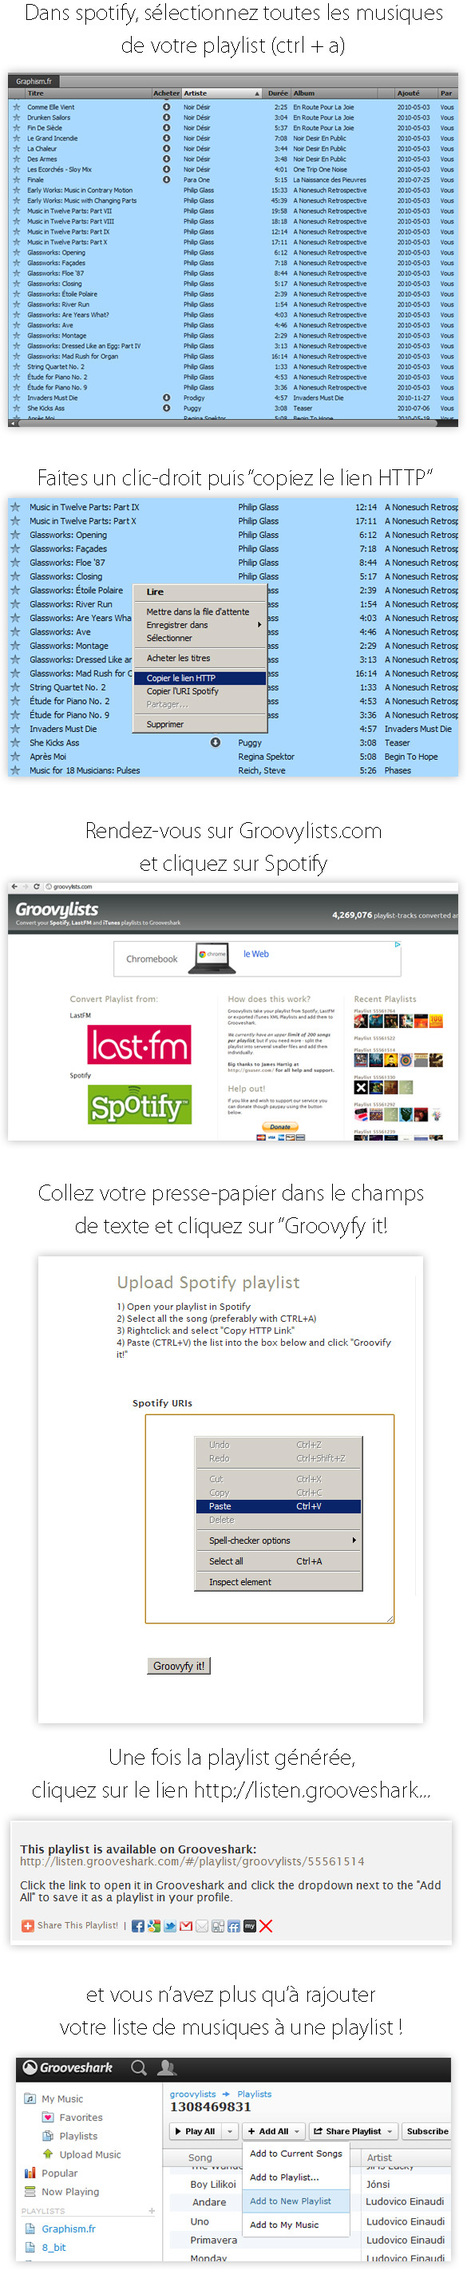 Comment migrer de Spotify vers Grooveshark | Time to Learn | Scoop.it